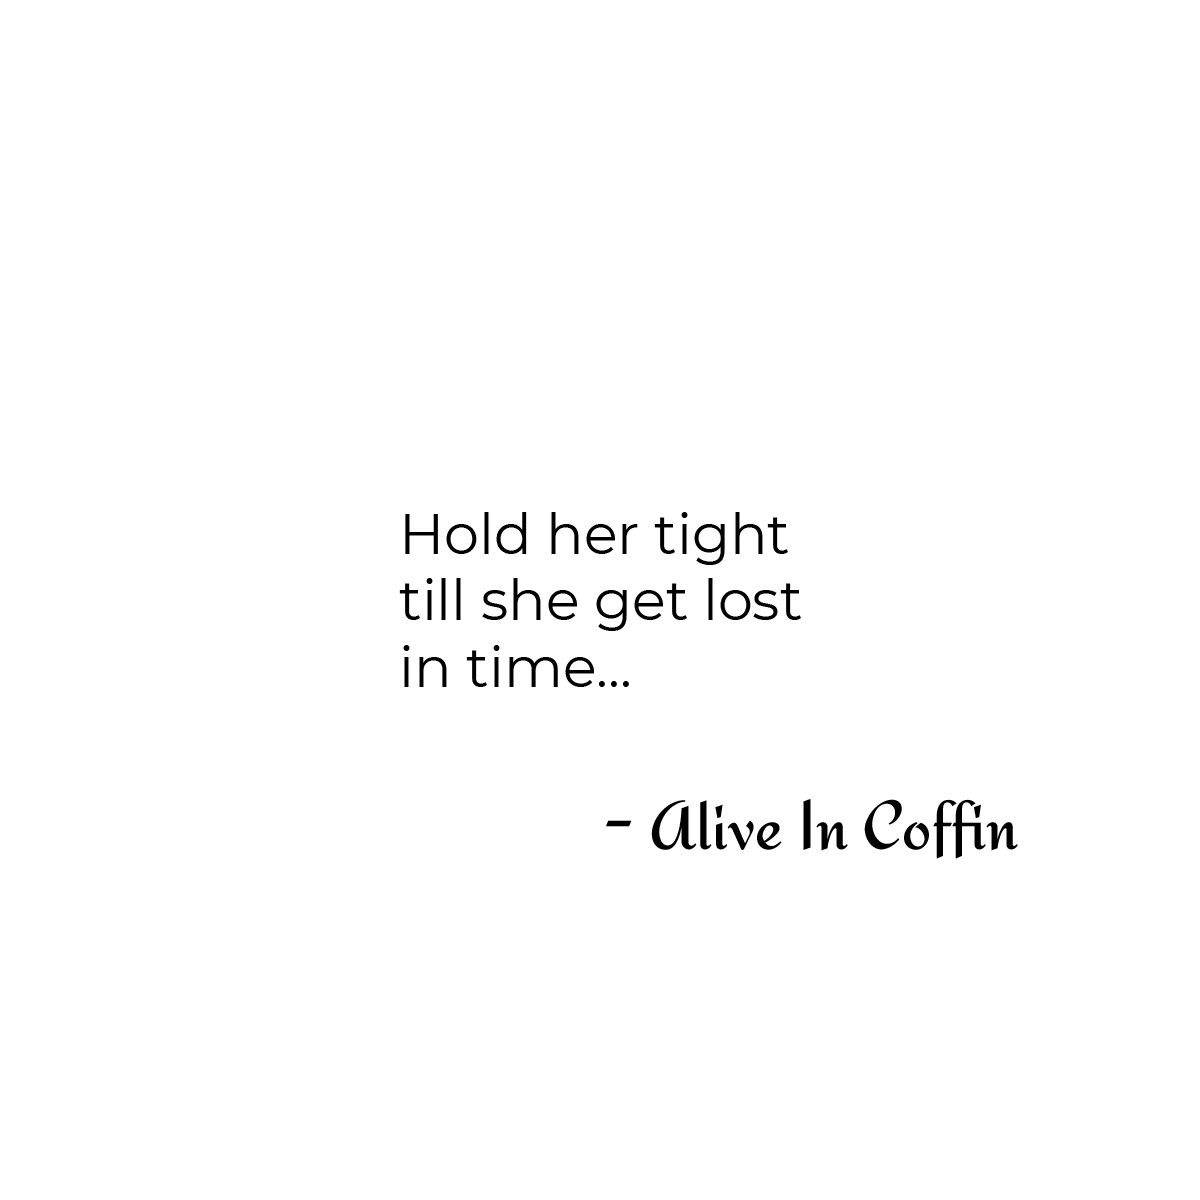 A romantic short poem about holding her.